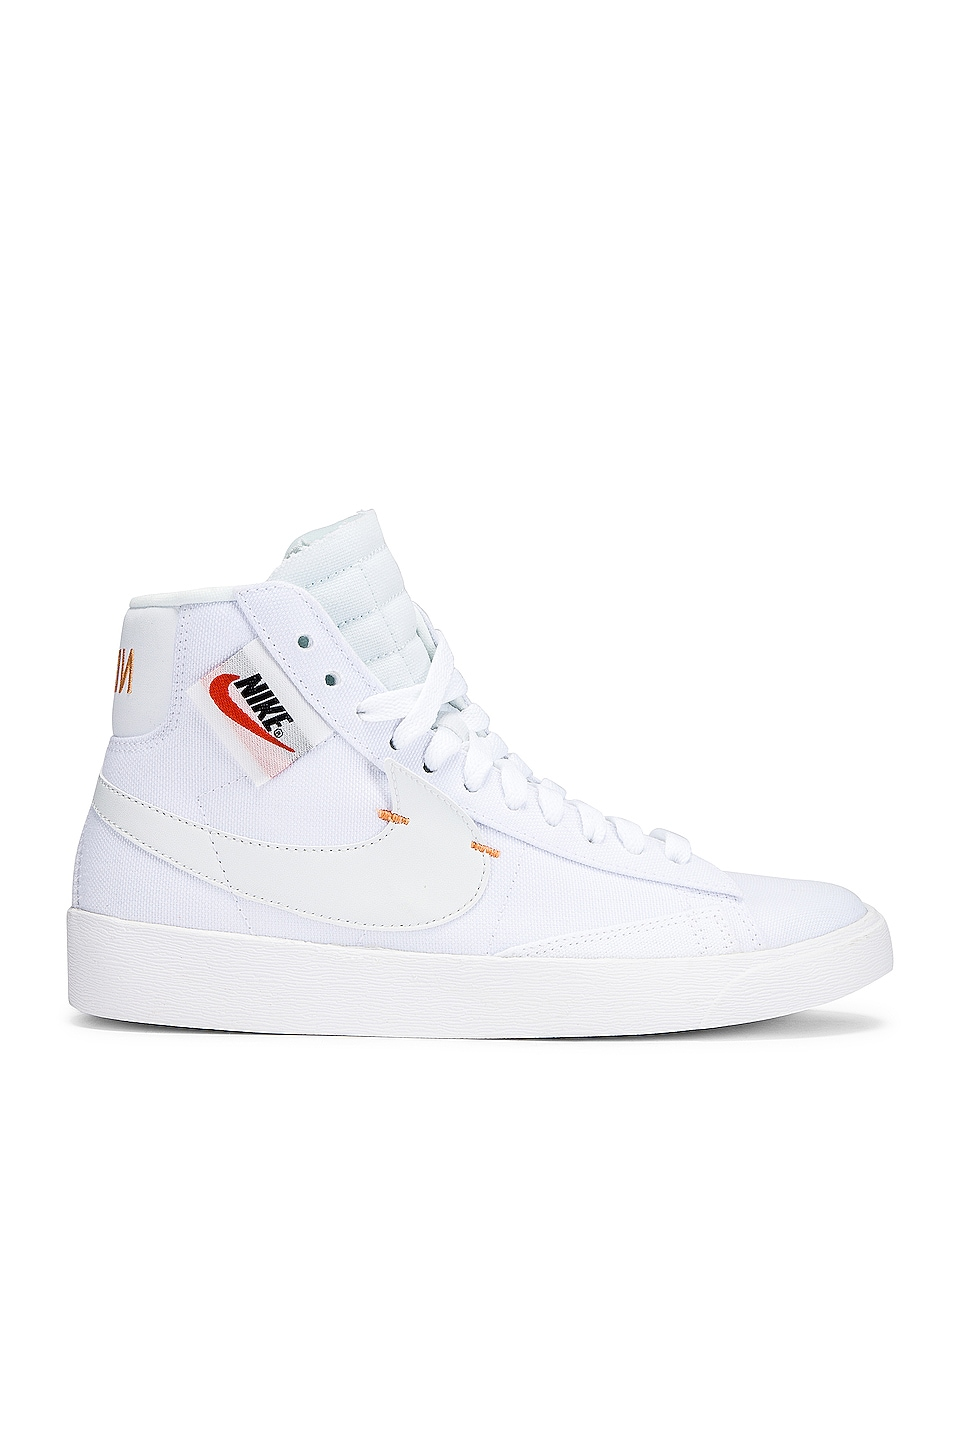 Nike Women's Blazer Mid Rebel Sneaker in White & Orange